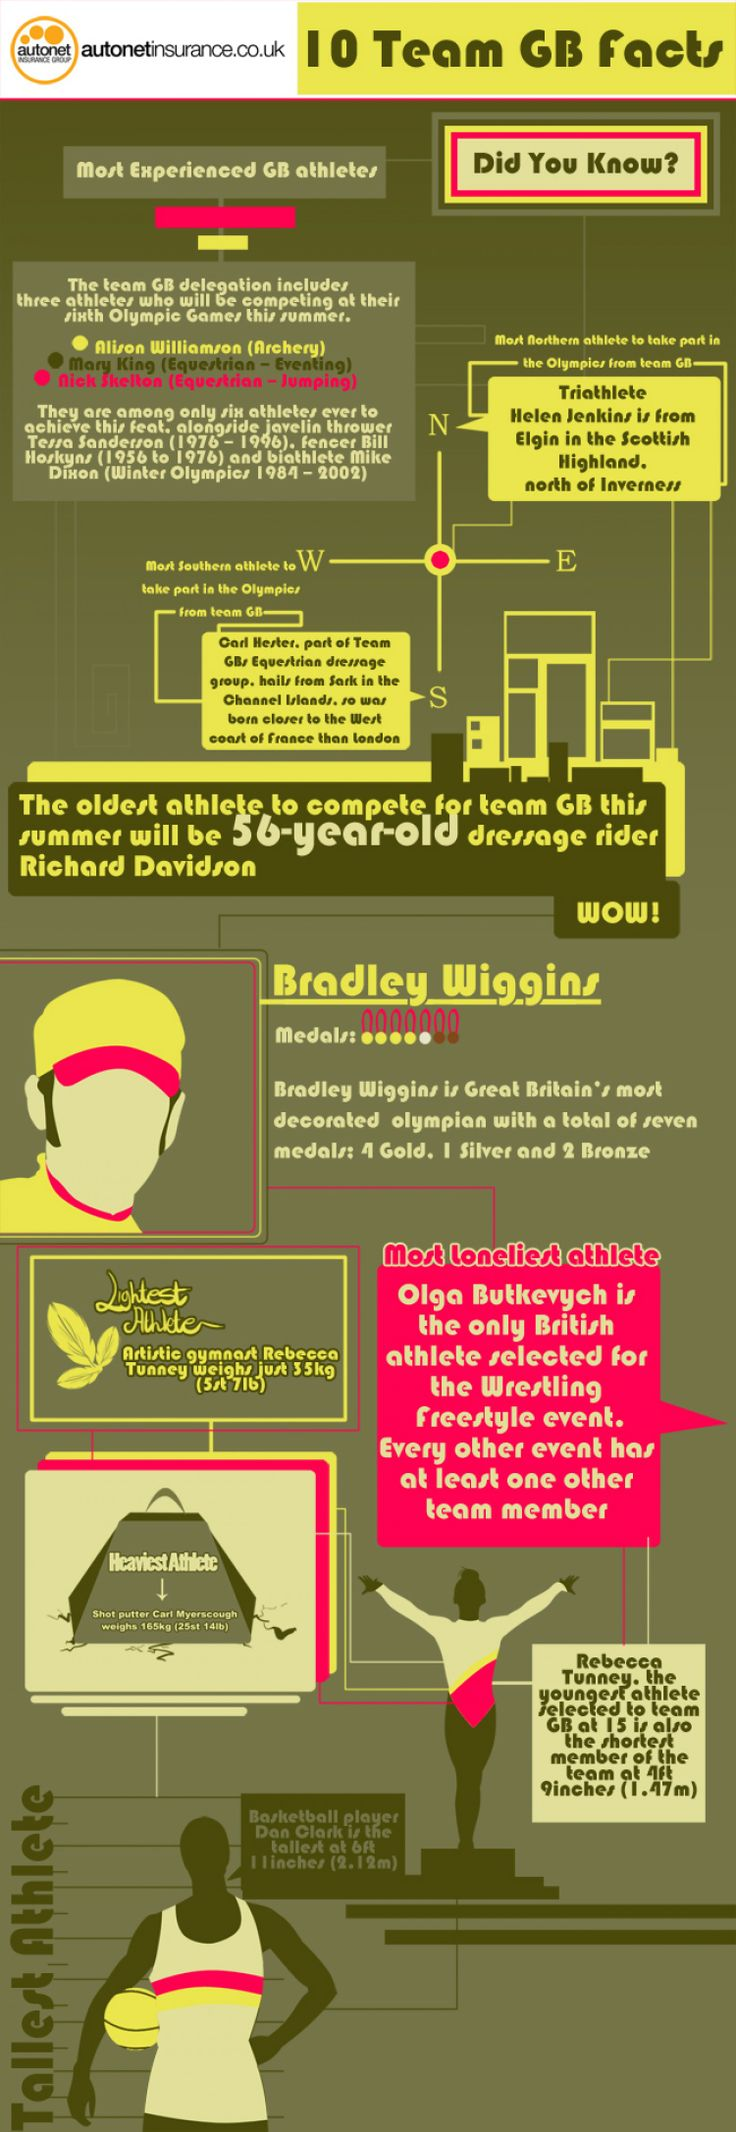 10 Top Team GB Facts designed by Click Consult #Infographic